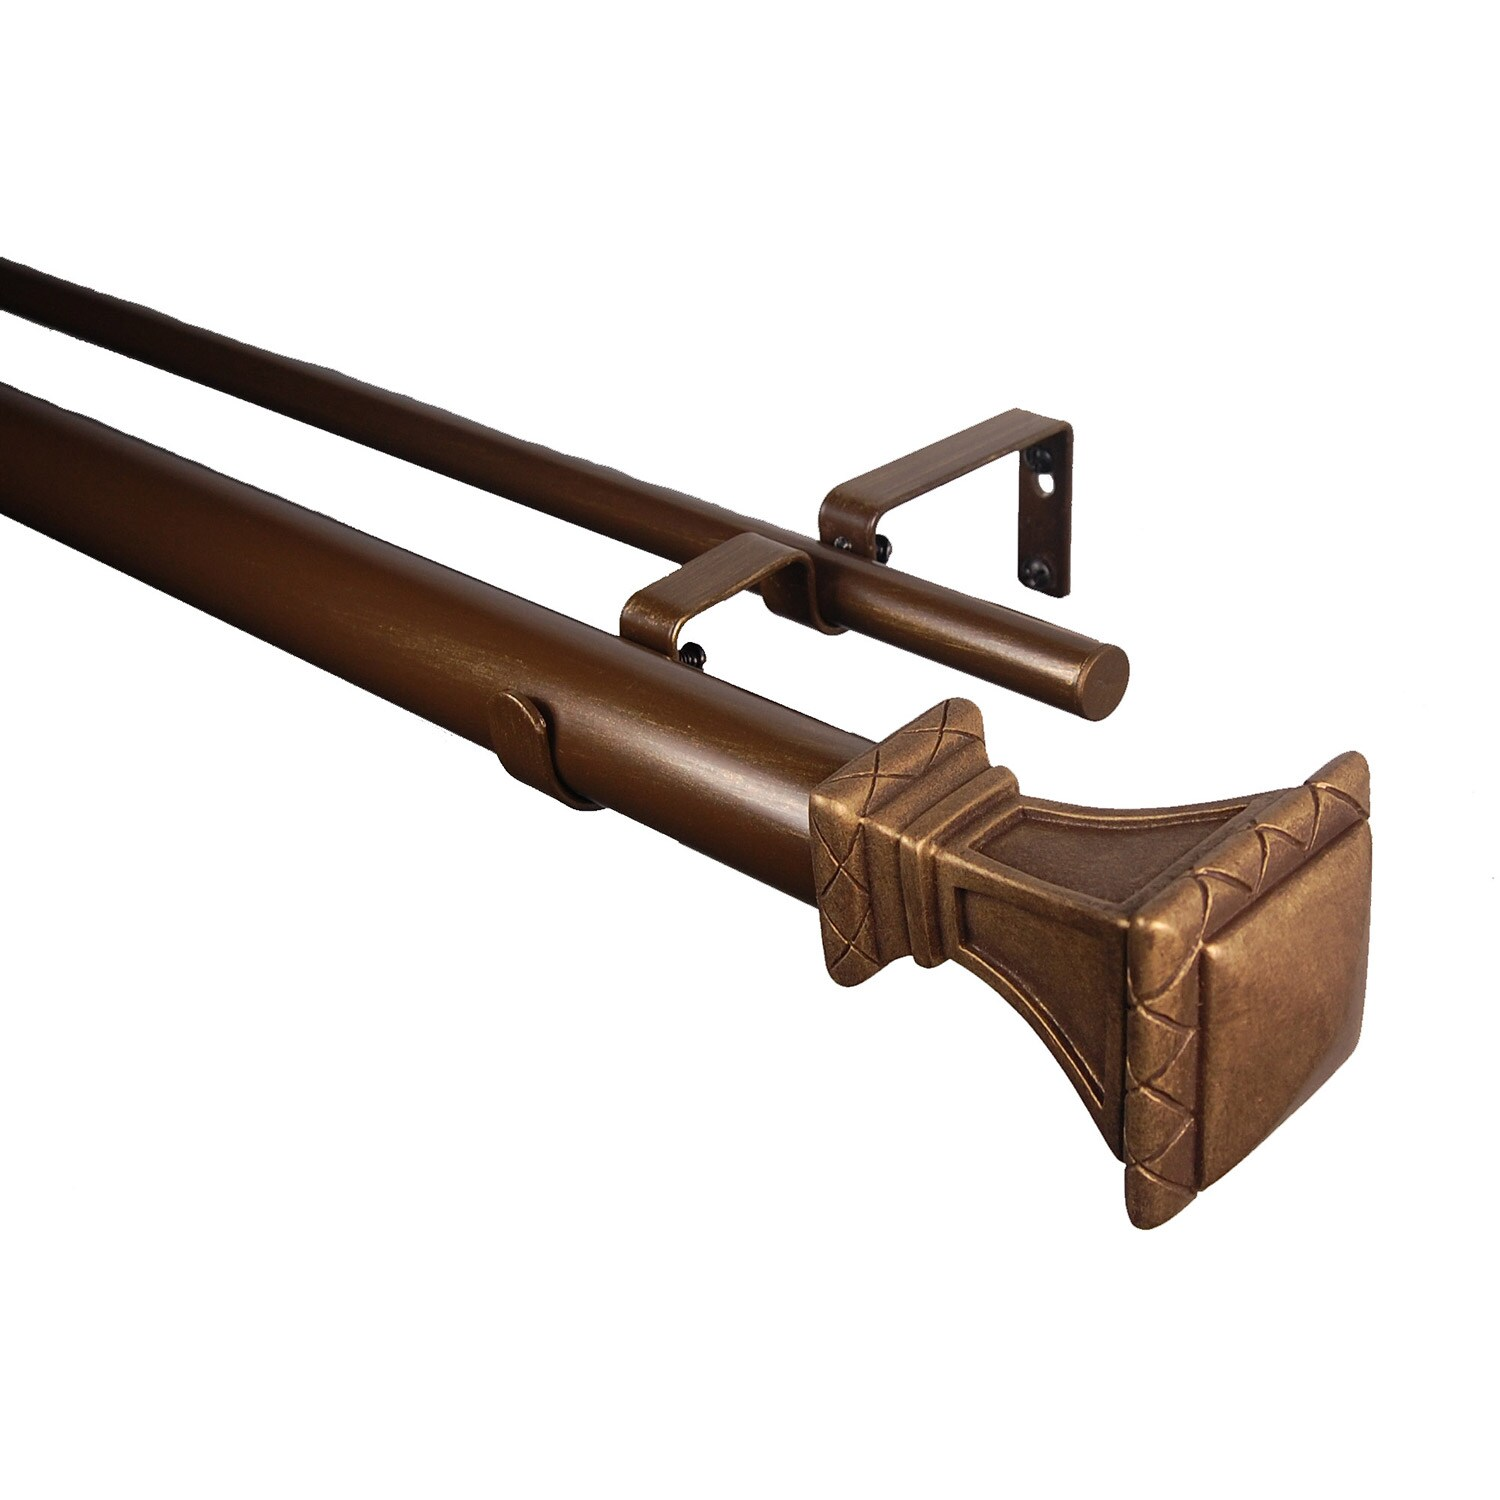 Adjustable Trumpeted Square Double Curtain Rod 48-86